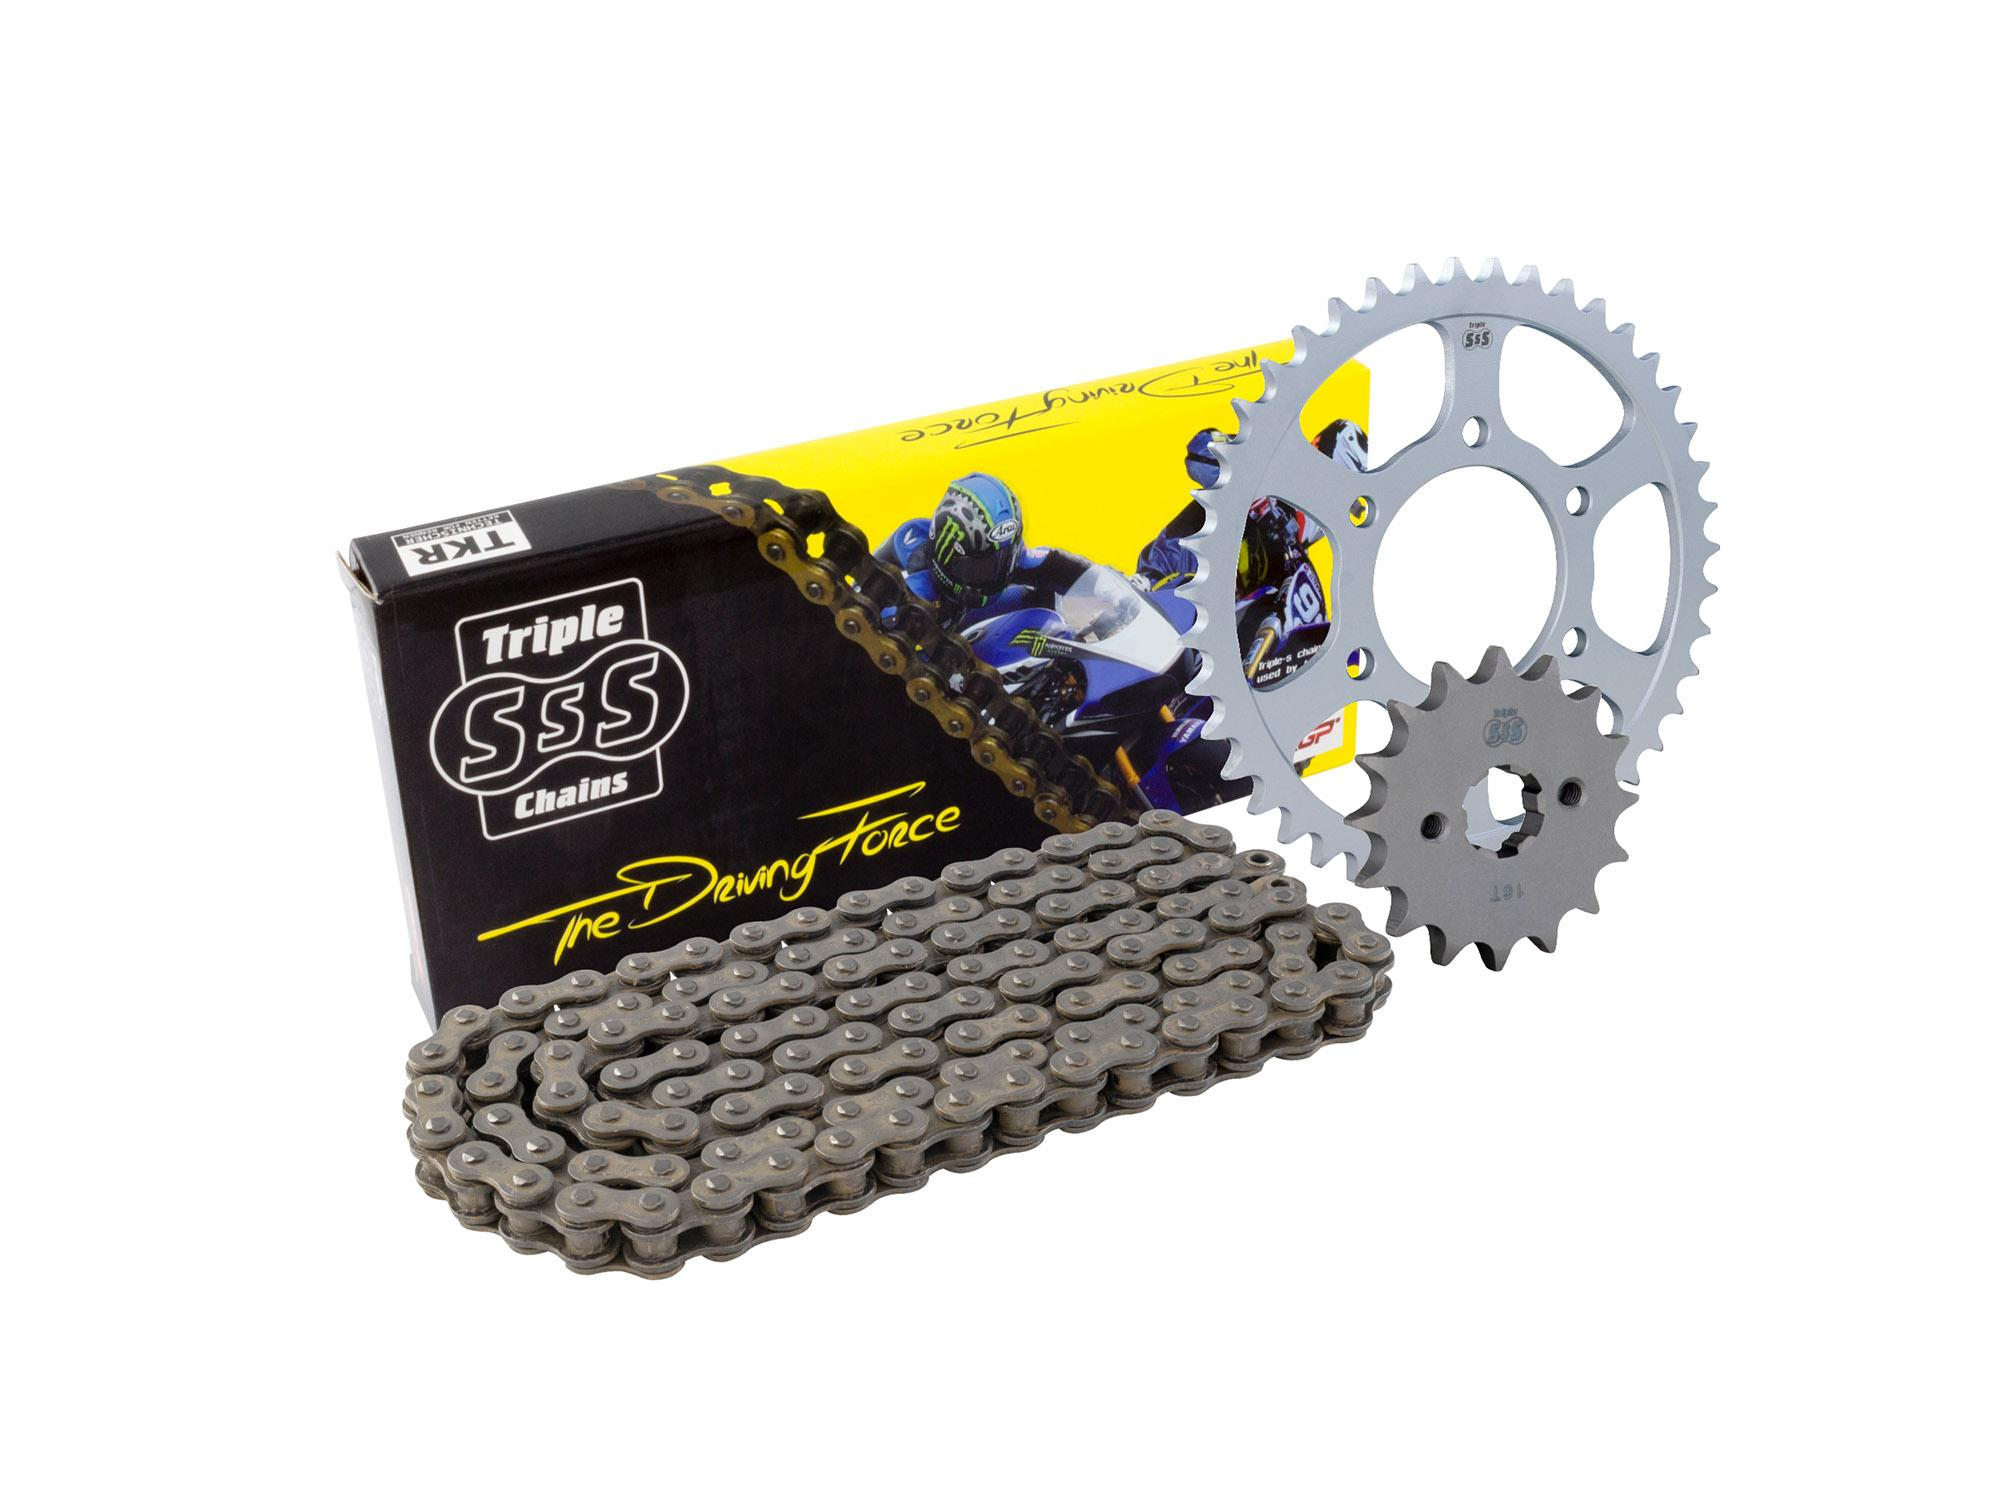 Suzuki DR-Z250 K1-K7 01-07 Chain & Sprocket Kit: 13T Front, 49T Rear, HD O-Ring Black Chain 520H 112 Link